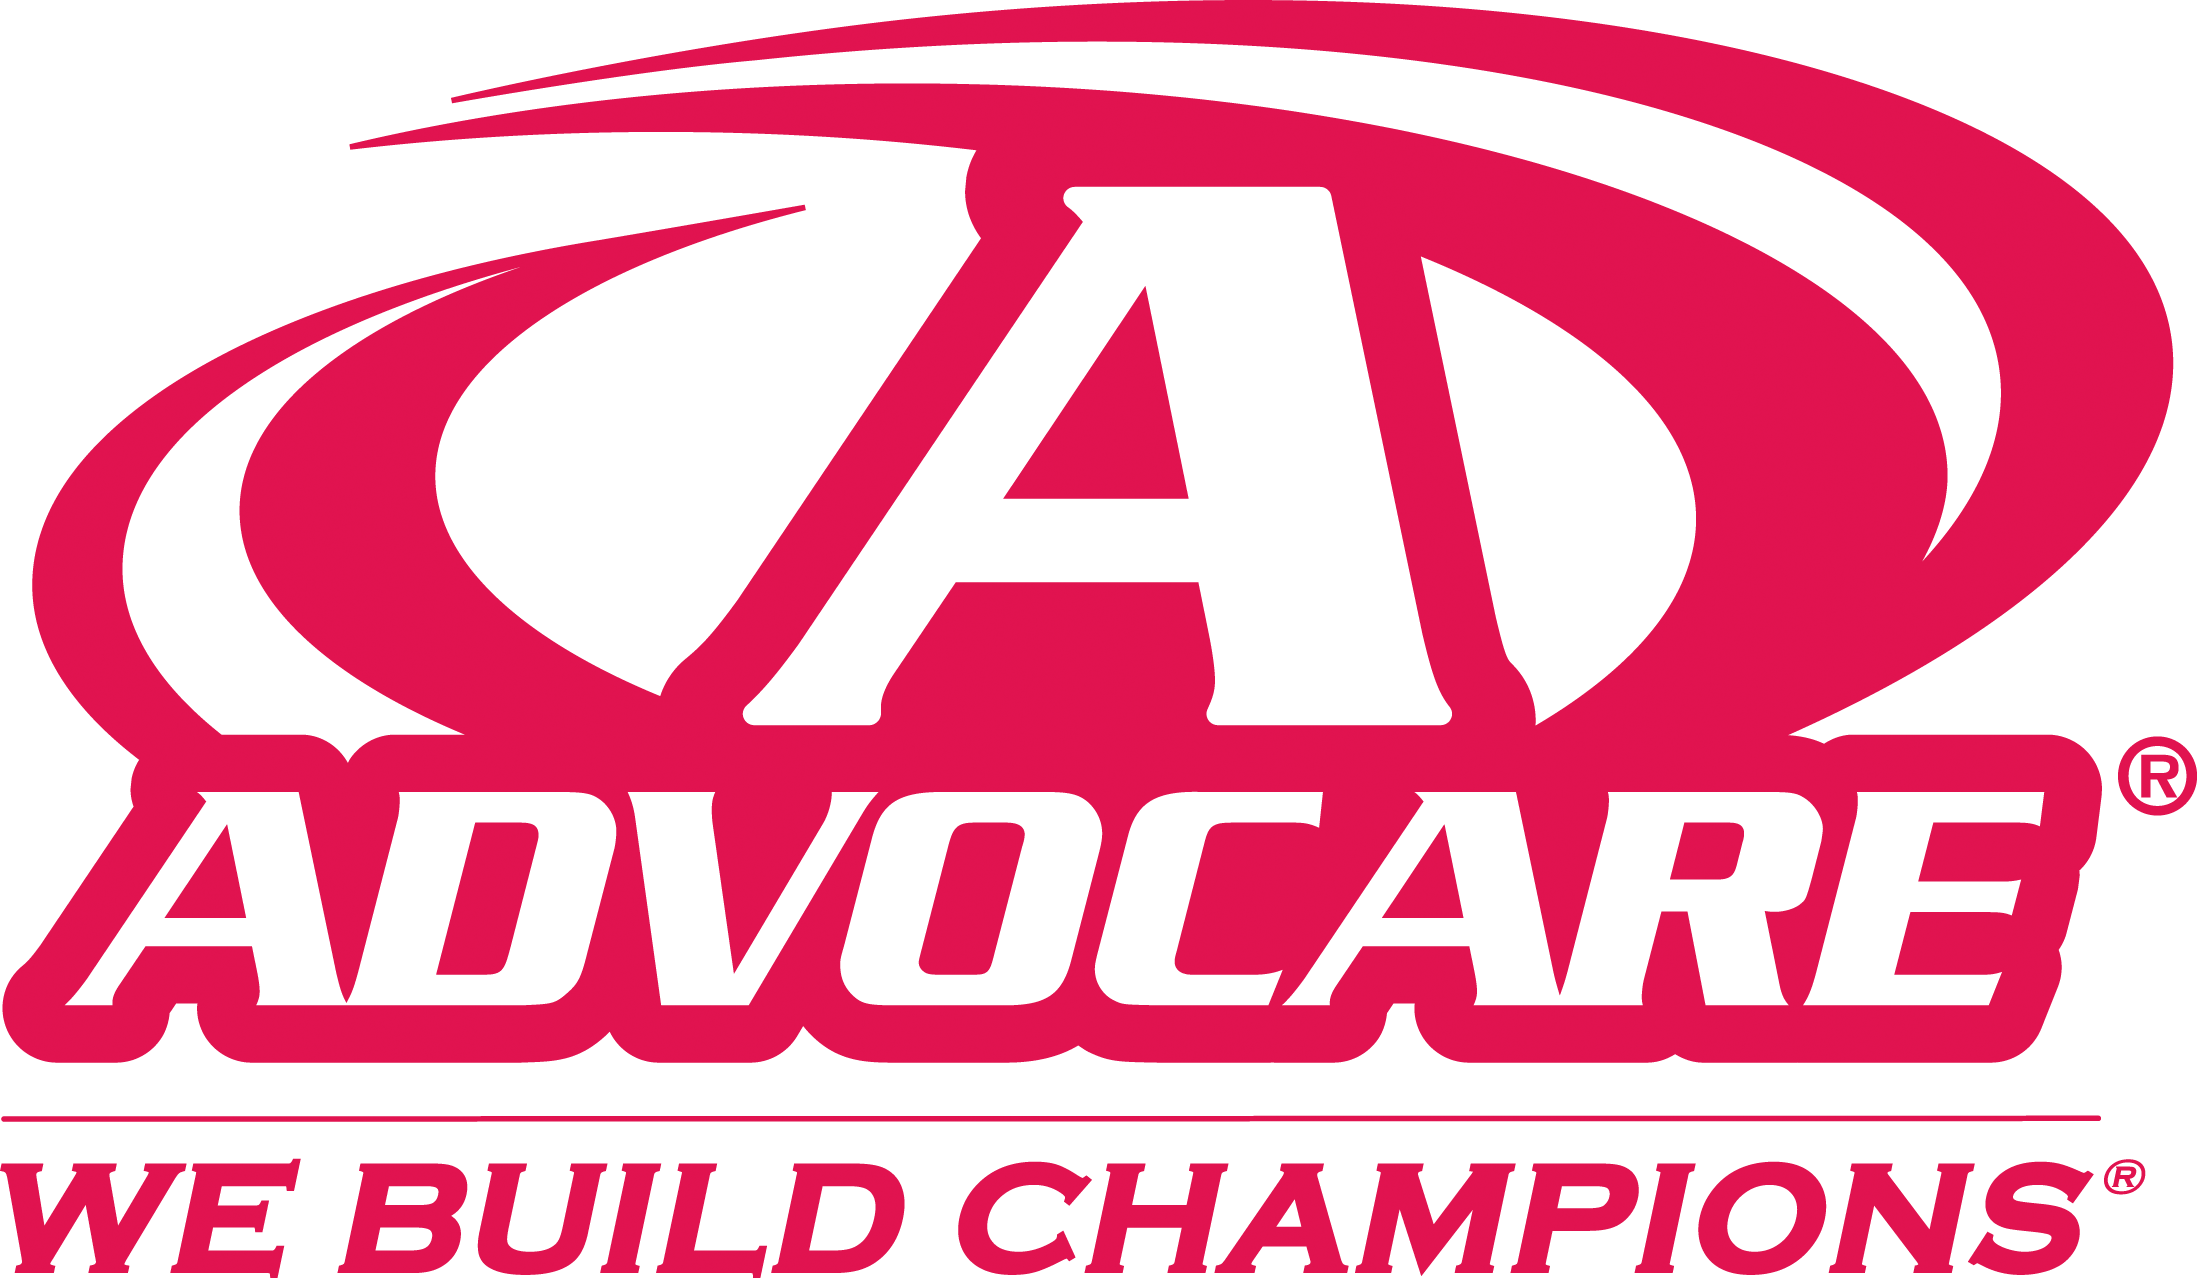 Advocare Distributors Are Going To Bring It Home This Labor Day Weekend Advocarepin2013 Cleanse Recipes Advocare Recipes Advocare